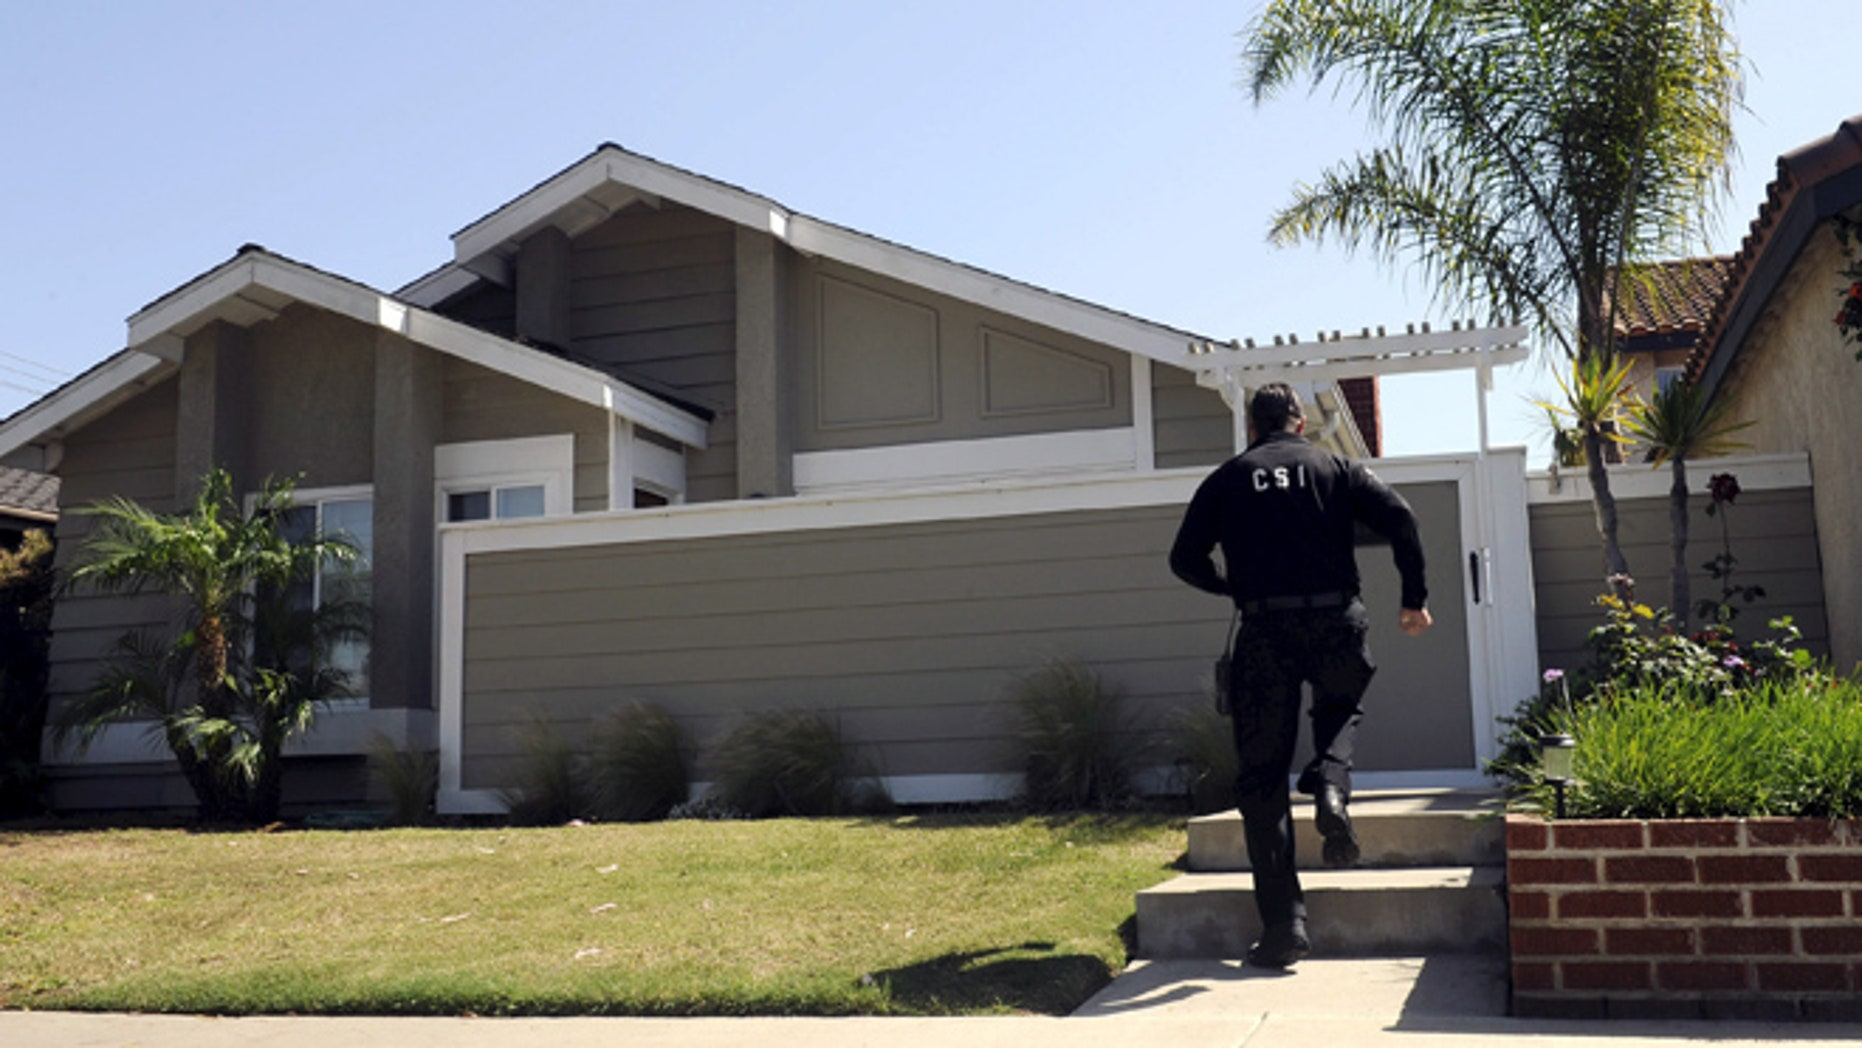 FILE: A Huntington Beach police Crime Scene Investigator is shown at the family home of Denise Huskins in Huntington Beach, California